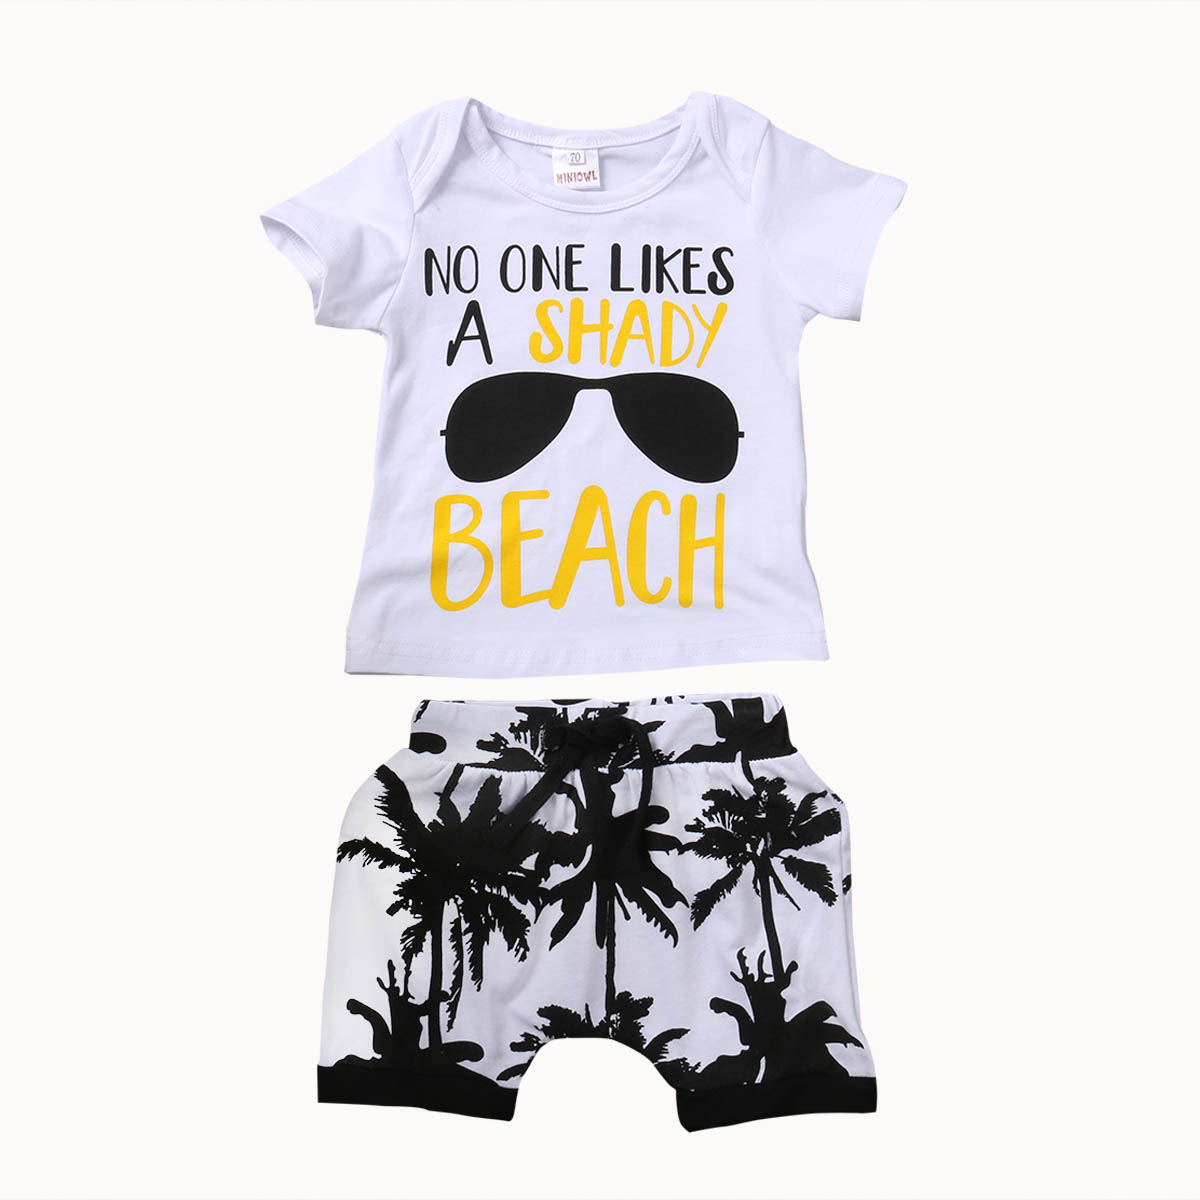 2PCS Toddler Kids Baby Boy Girl Clothes Set 2017 Summer Short Sleeve Cotton T-shirt Top+Shorts Hot Pant Outfit Children Clothing baby girl clothing syriped short sleeve tshirt pant headband 2pcs set summer baby girls clothes set roupa de bebe